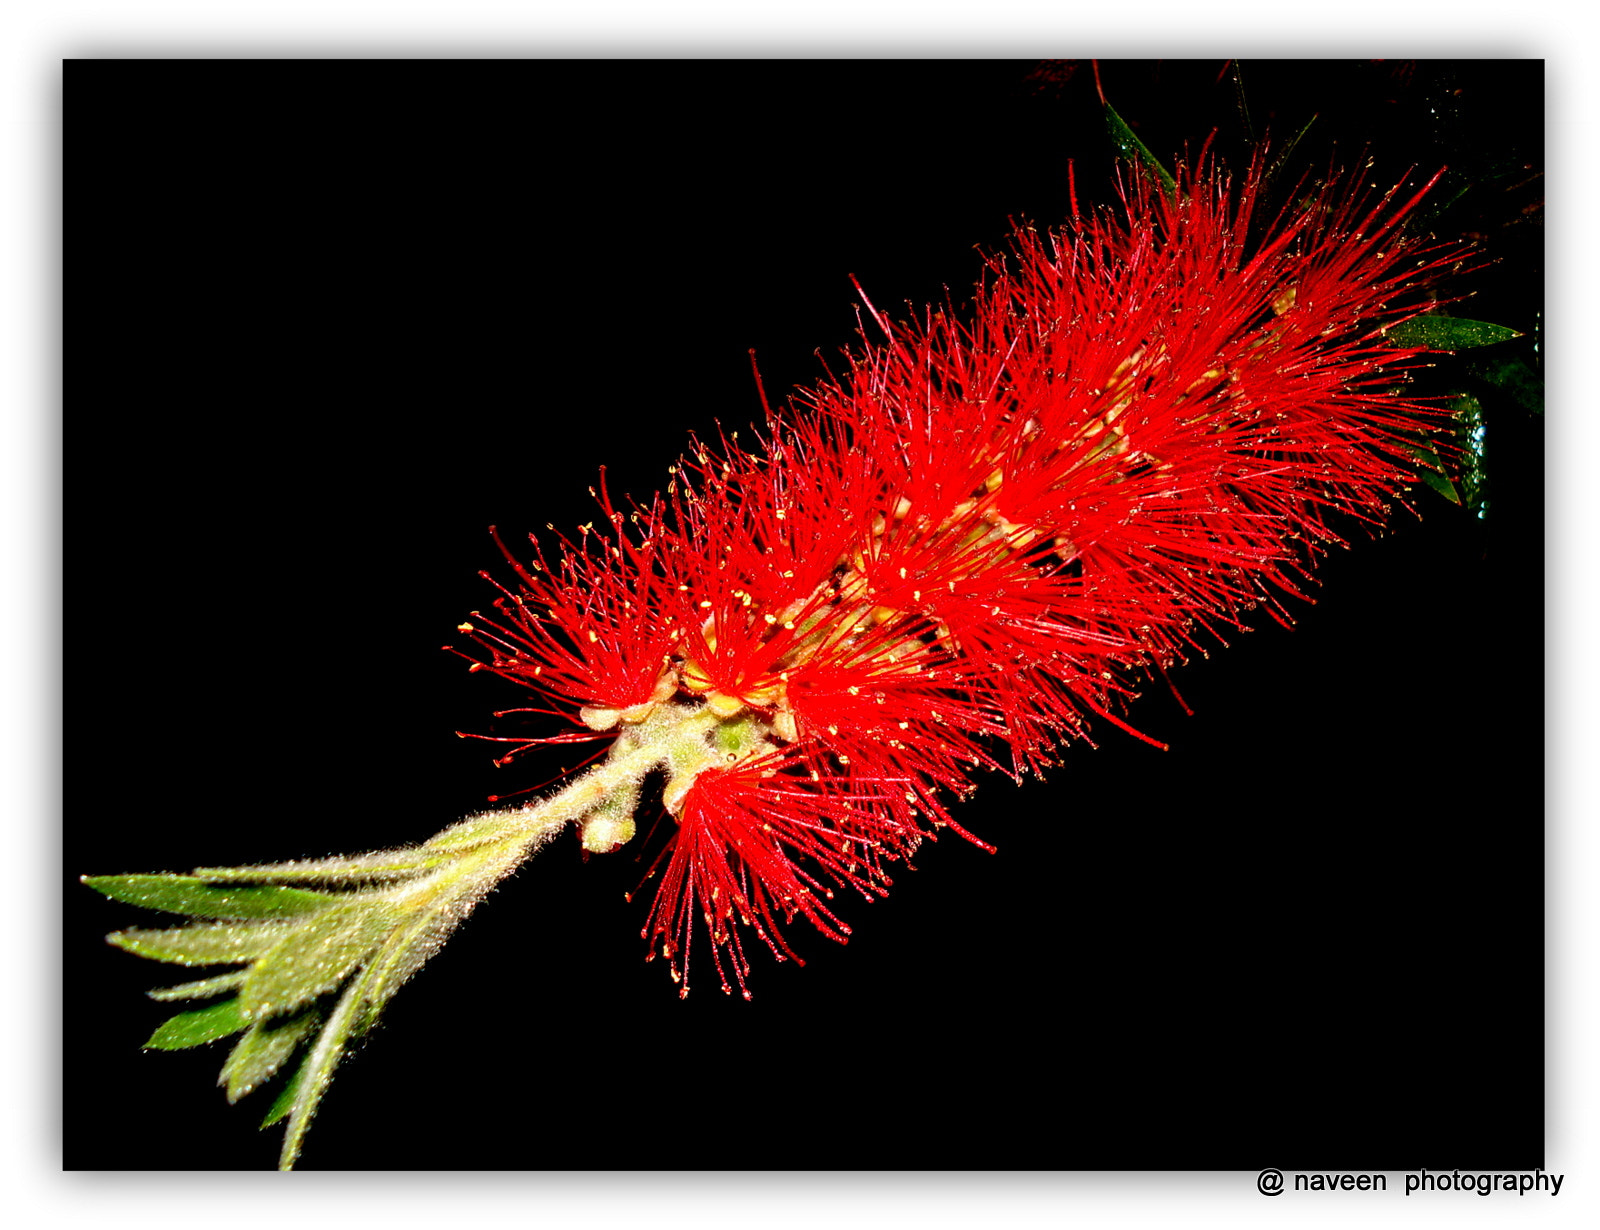 Photograph BEAUTY OF BOTTLE BRUSH by naveen sharma on 500px